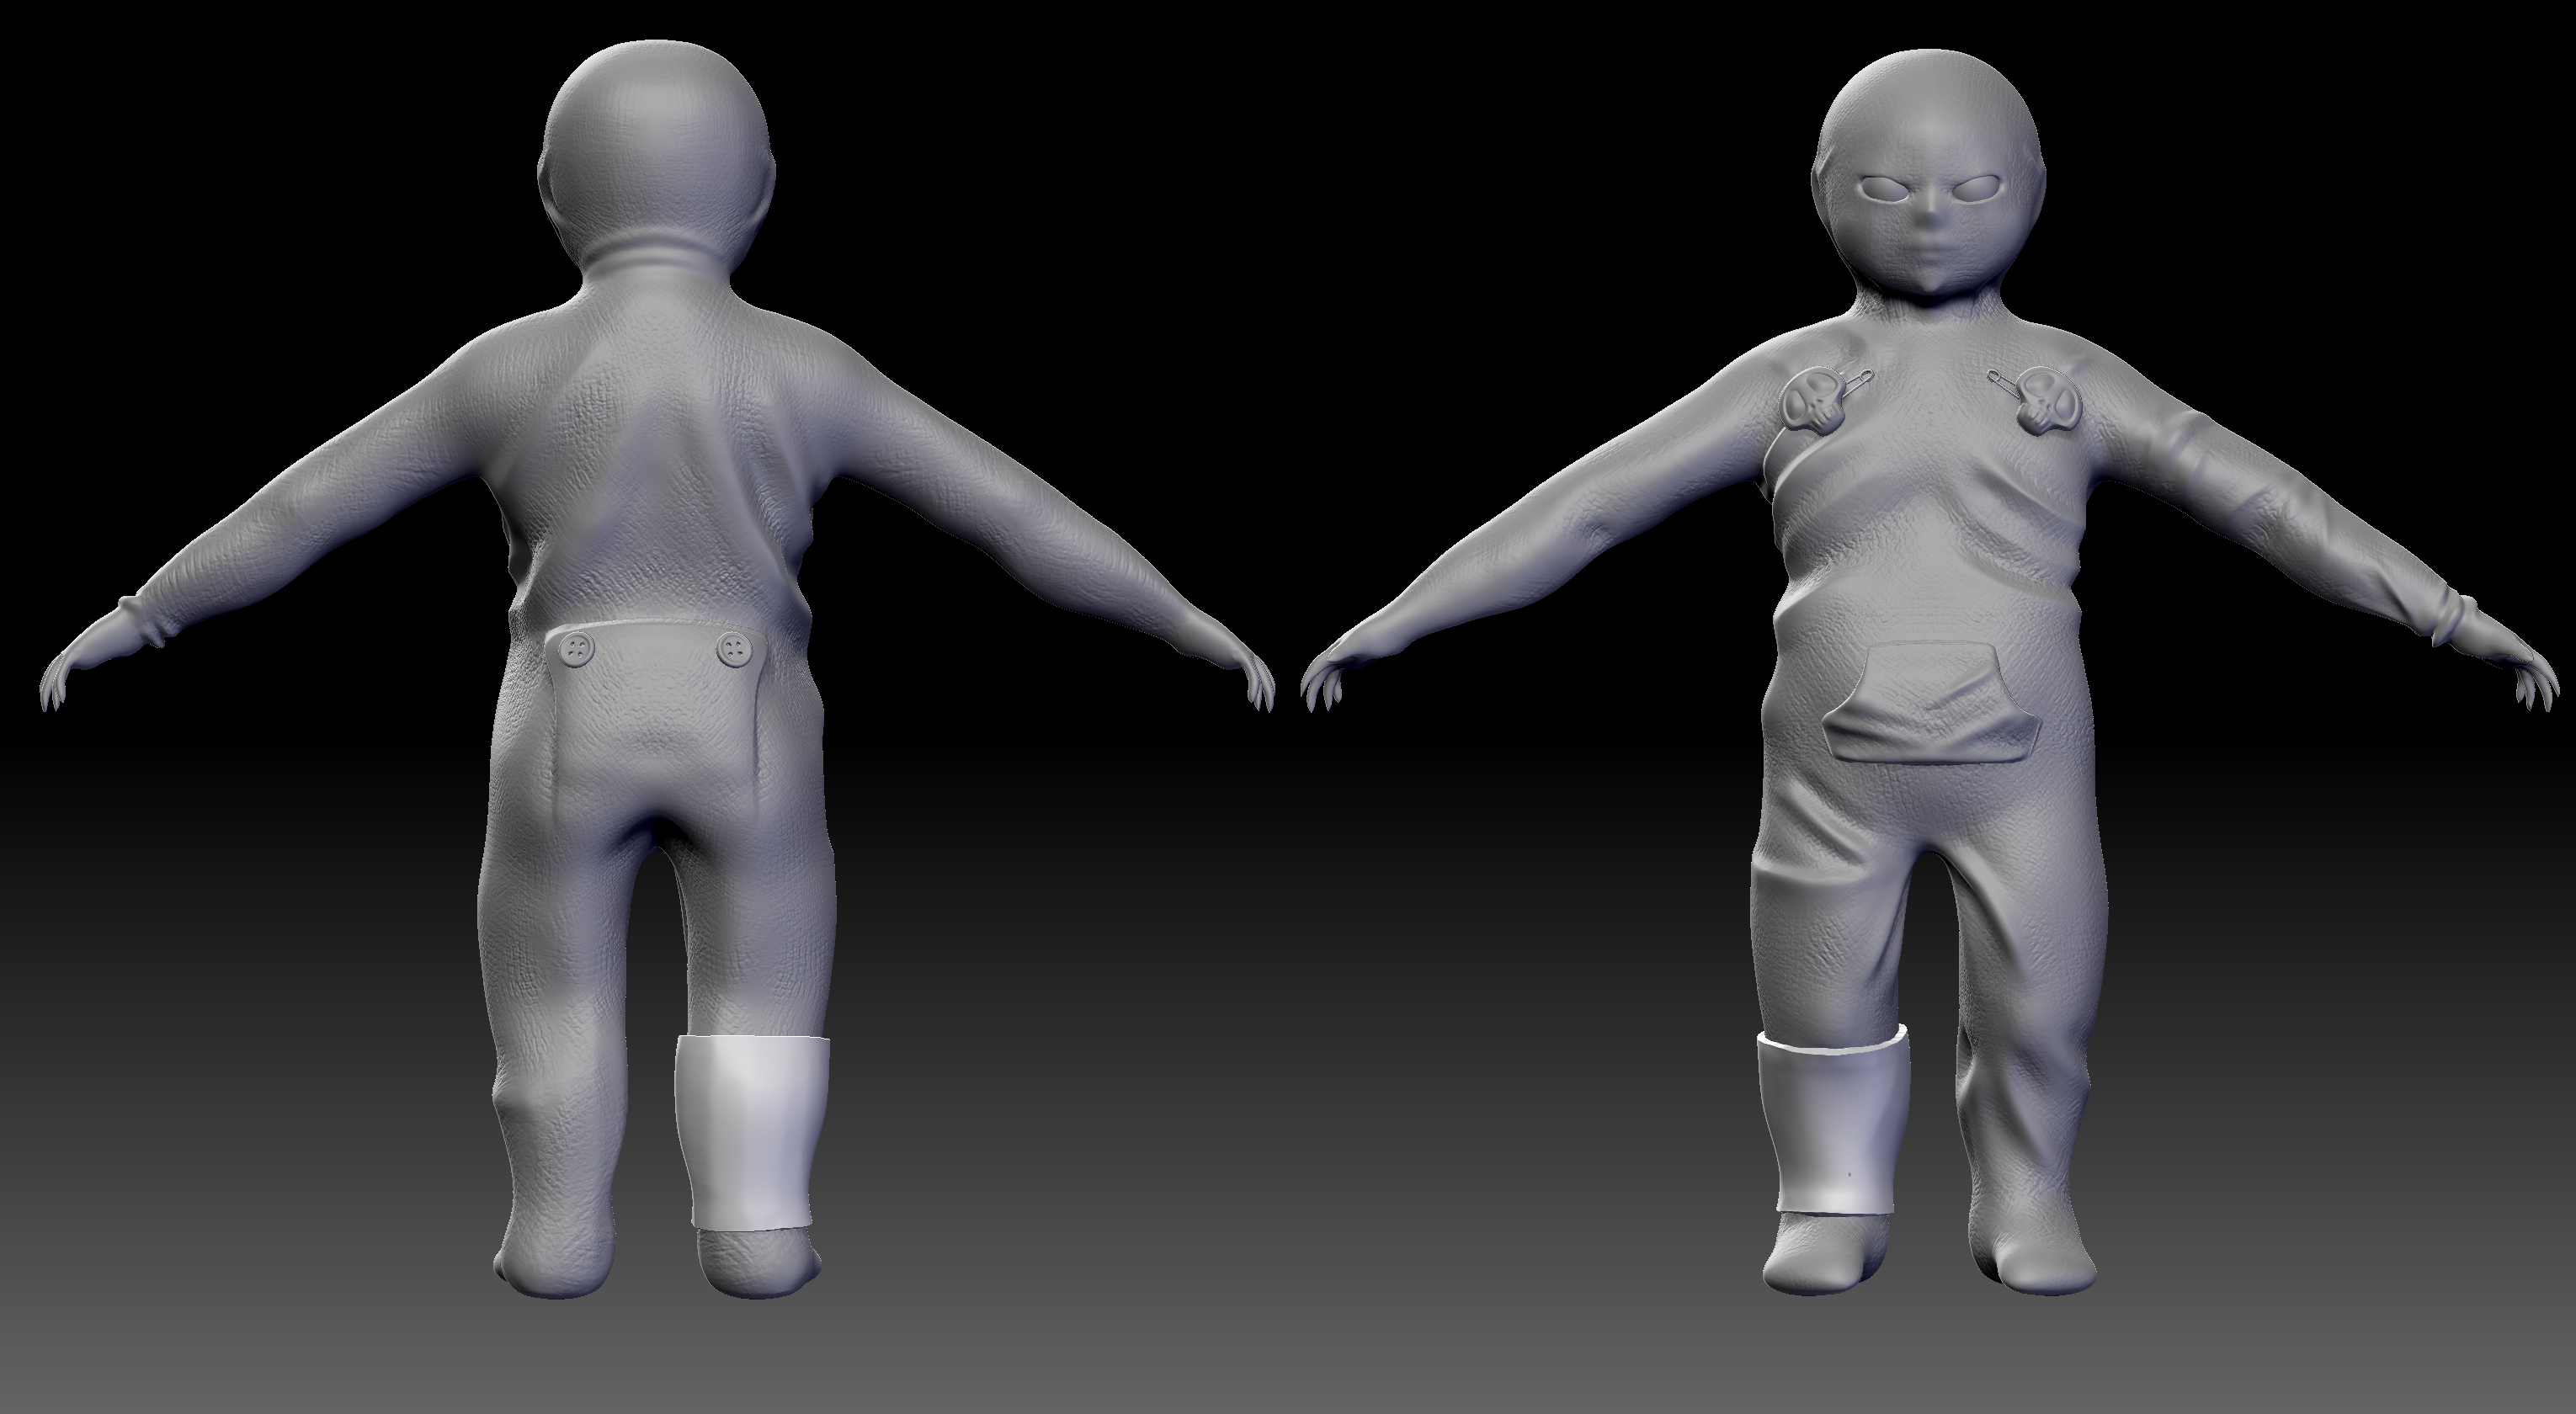 baby_spawn___1st_concept_sculpt_by_lorenzomelizza-d6utyfr.jpg